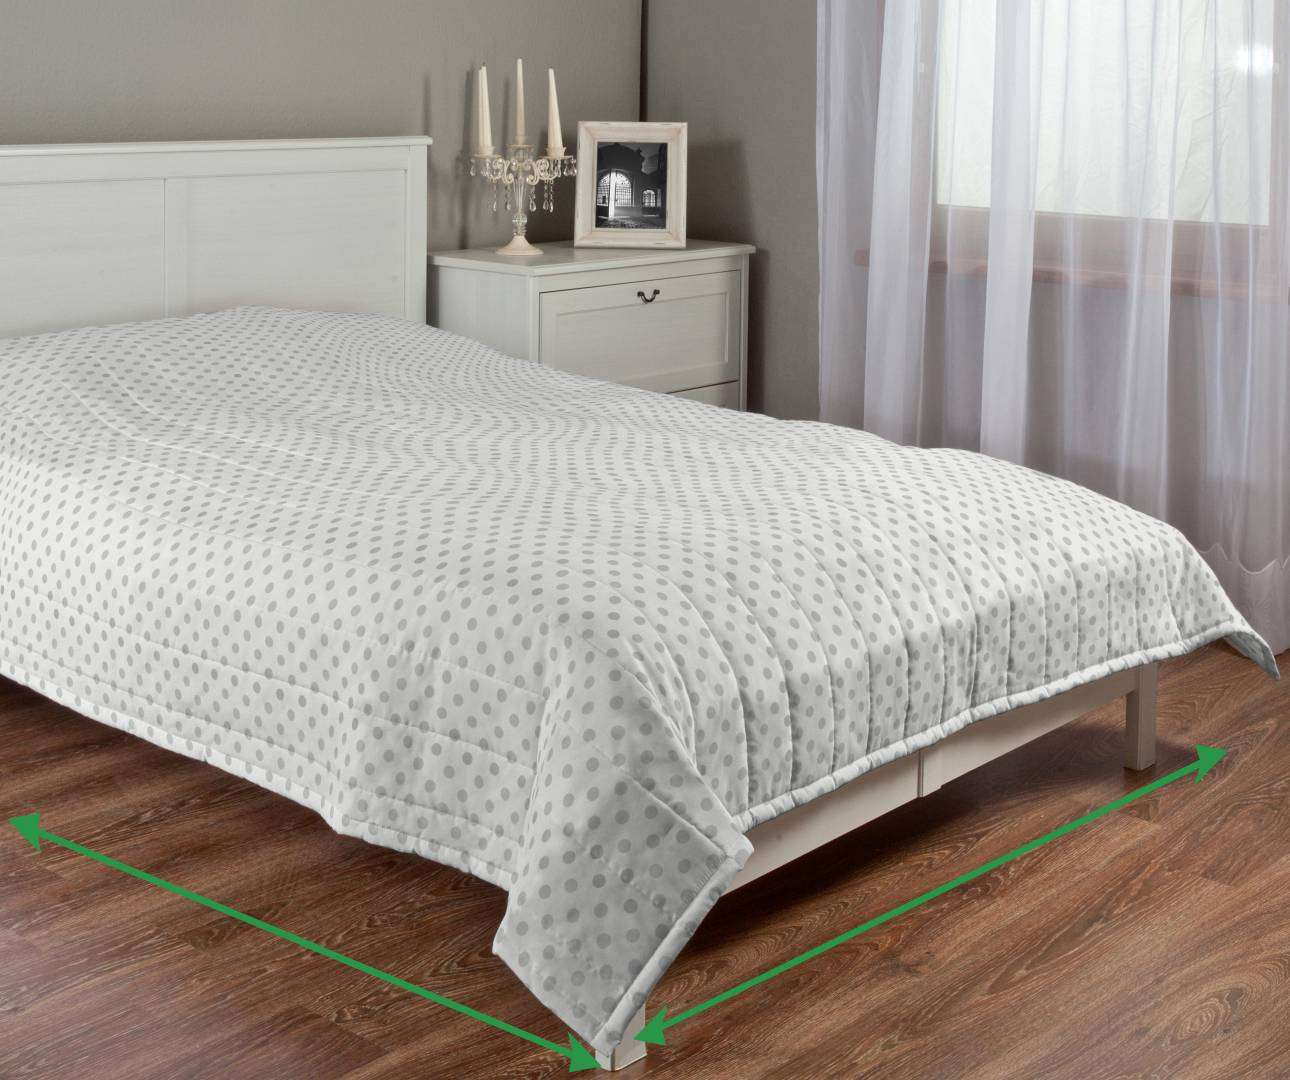 Quilted throw (vertical quilt pattern) in collection Ashley, fabric: 137-68